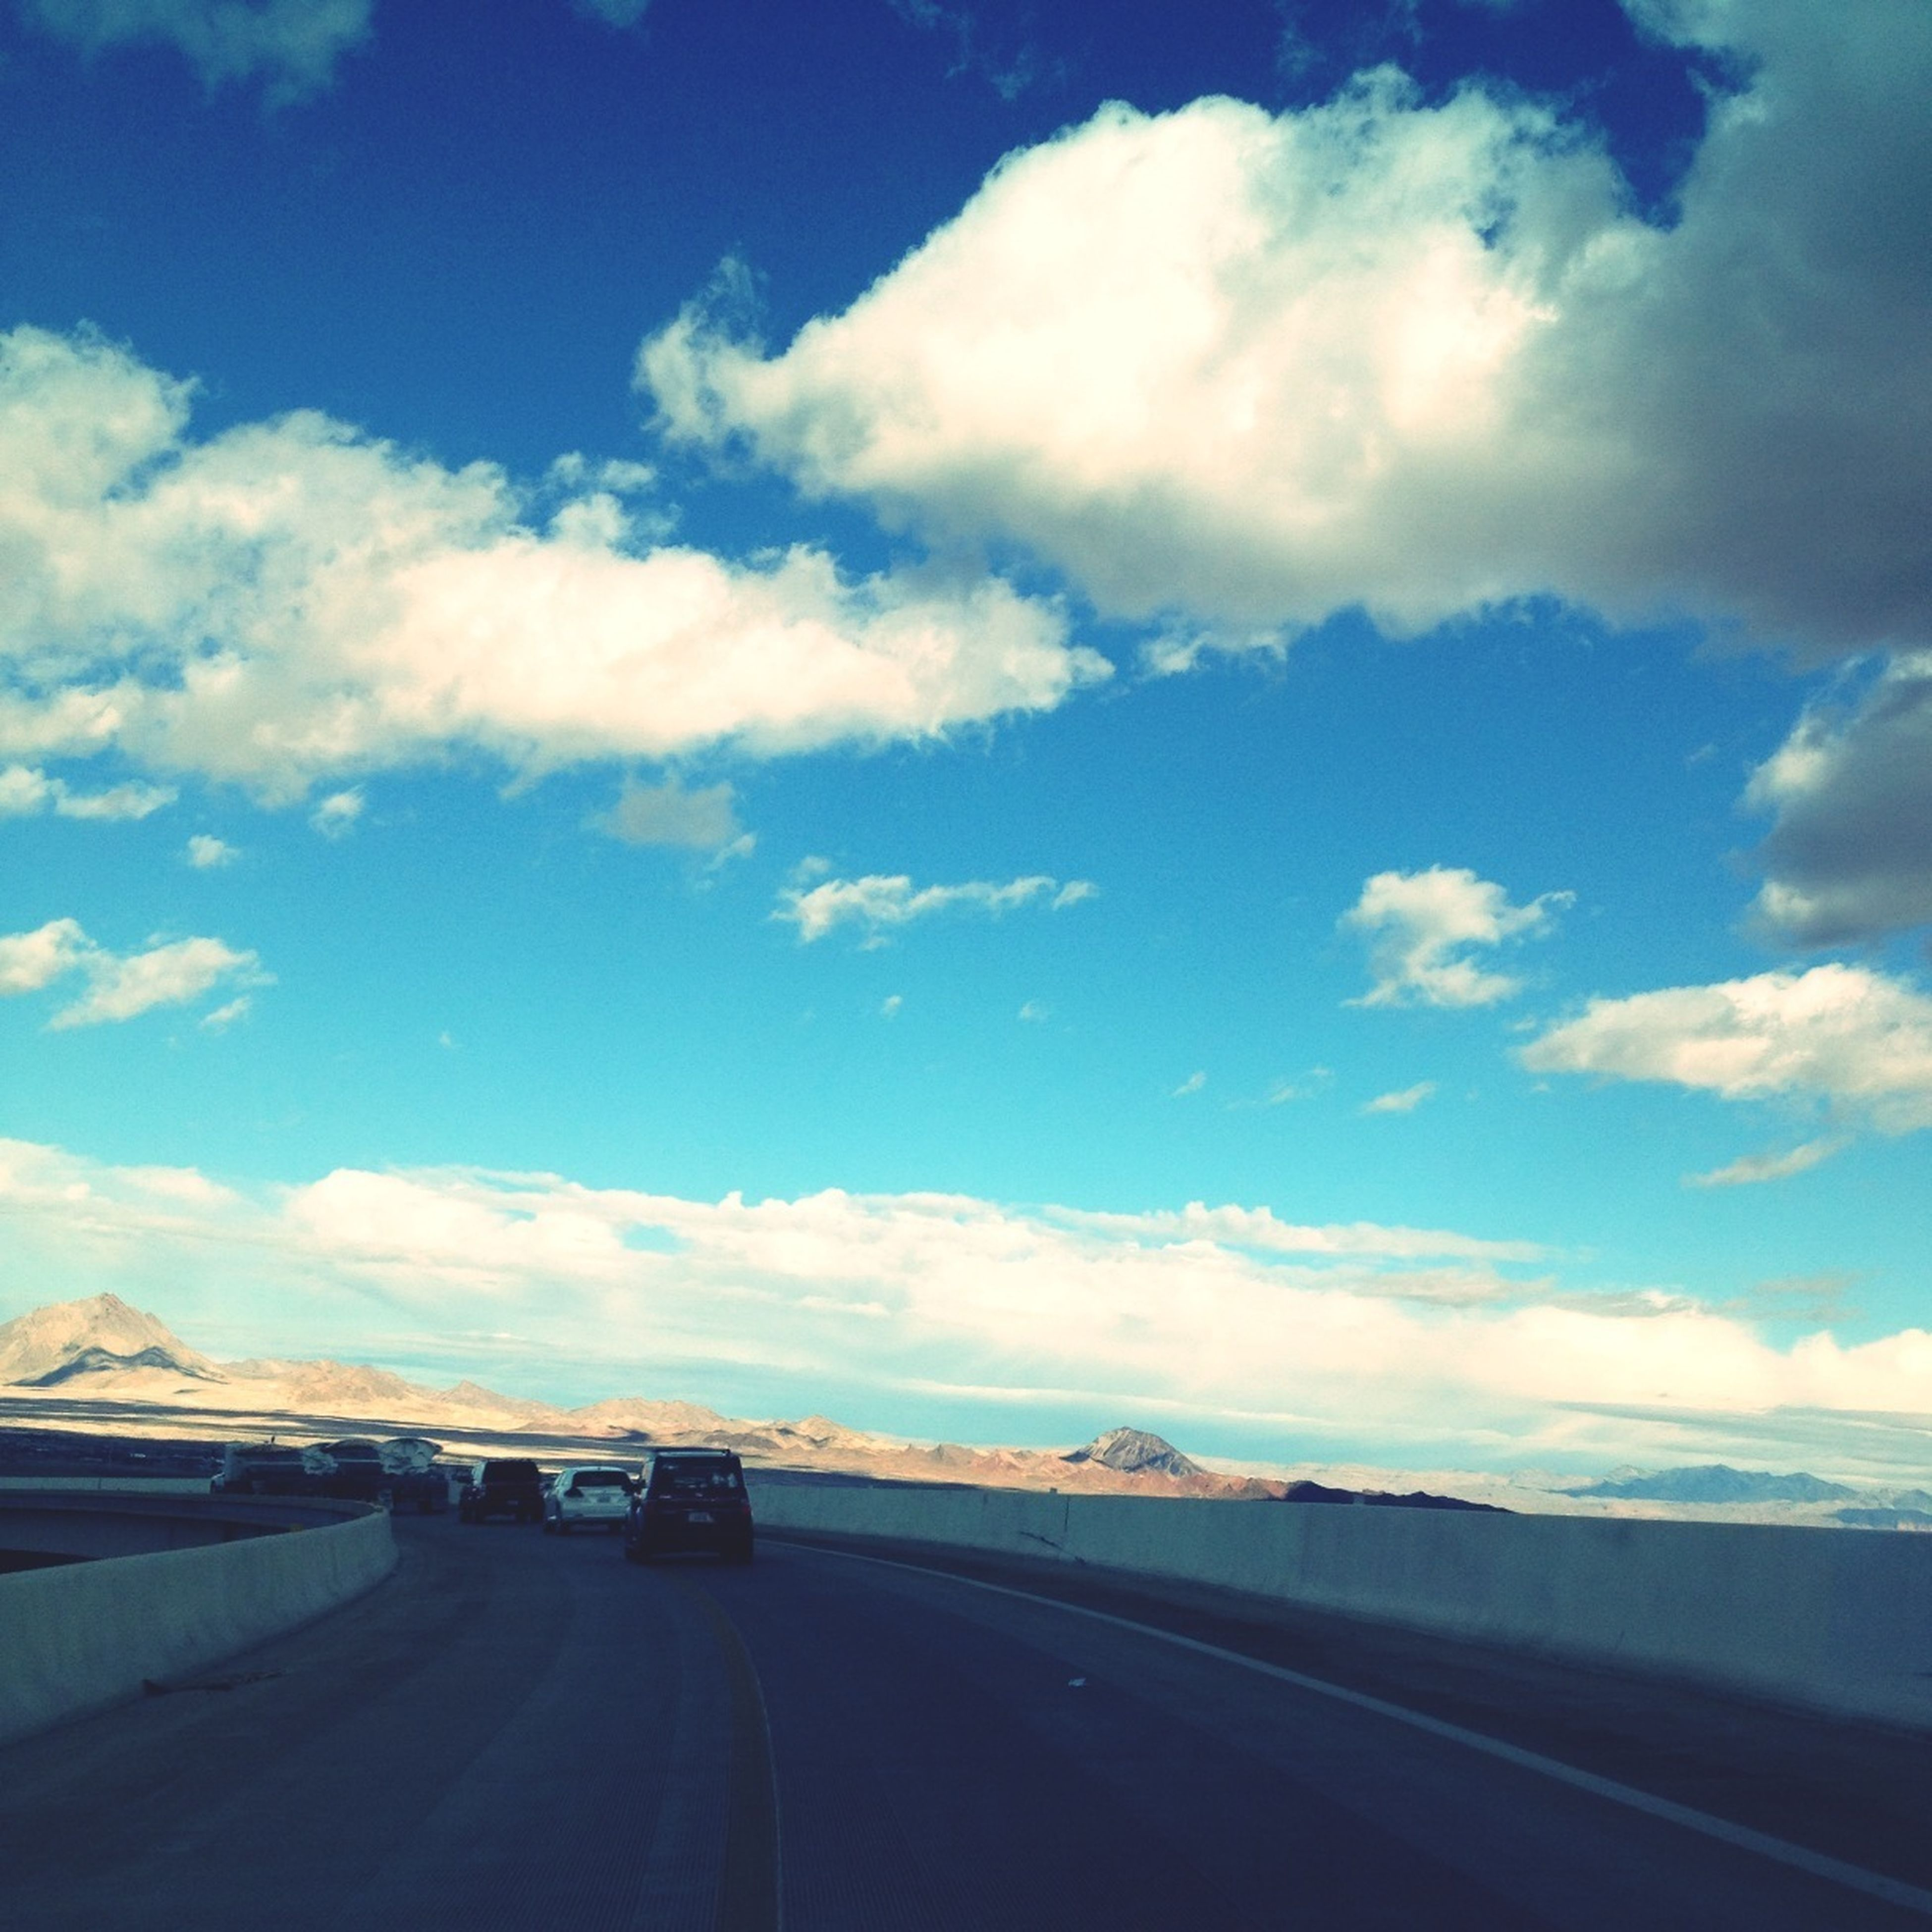 transportation, road, sky, the way forward, cloud - sky, road marking, cloud, blue, diminishing perspective, car, vanishing point, cloudy, street, mode of transport, land vehicle, highway, nature, country road, day, outdoors